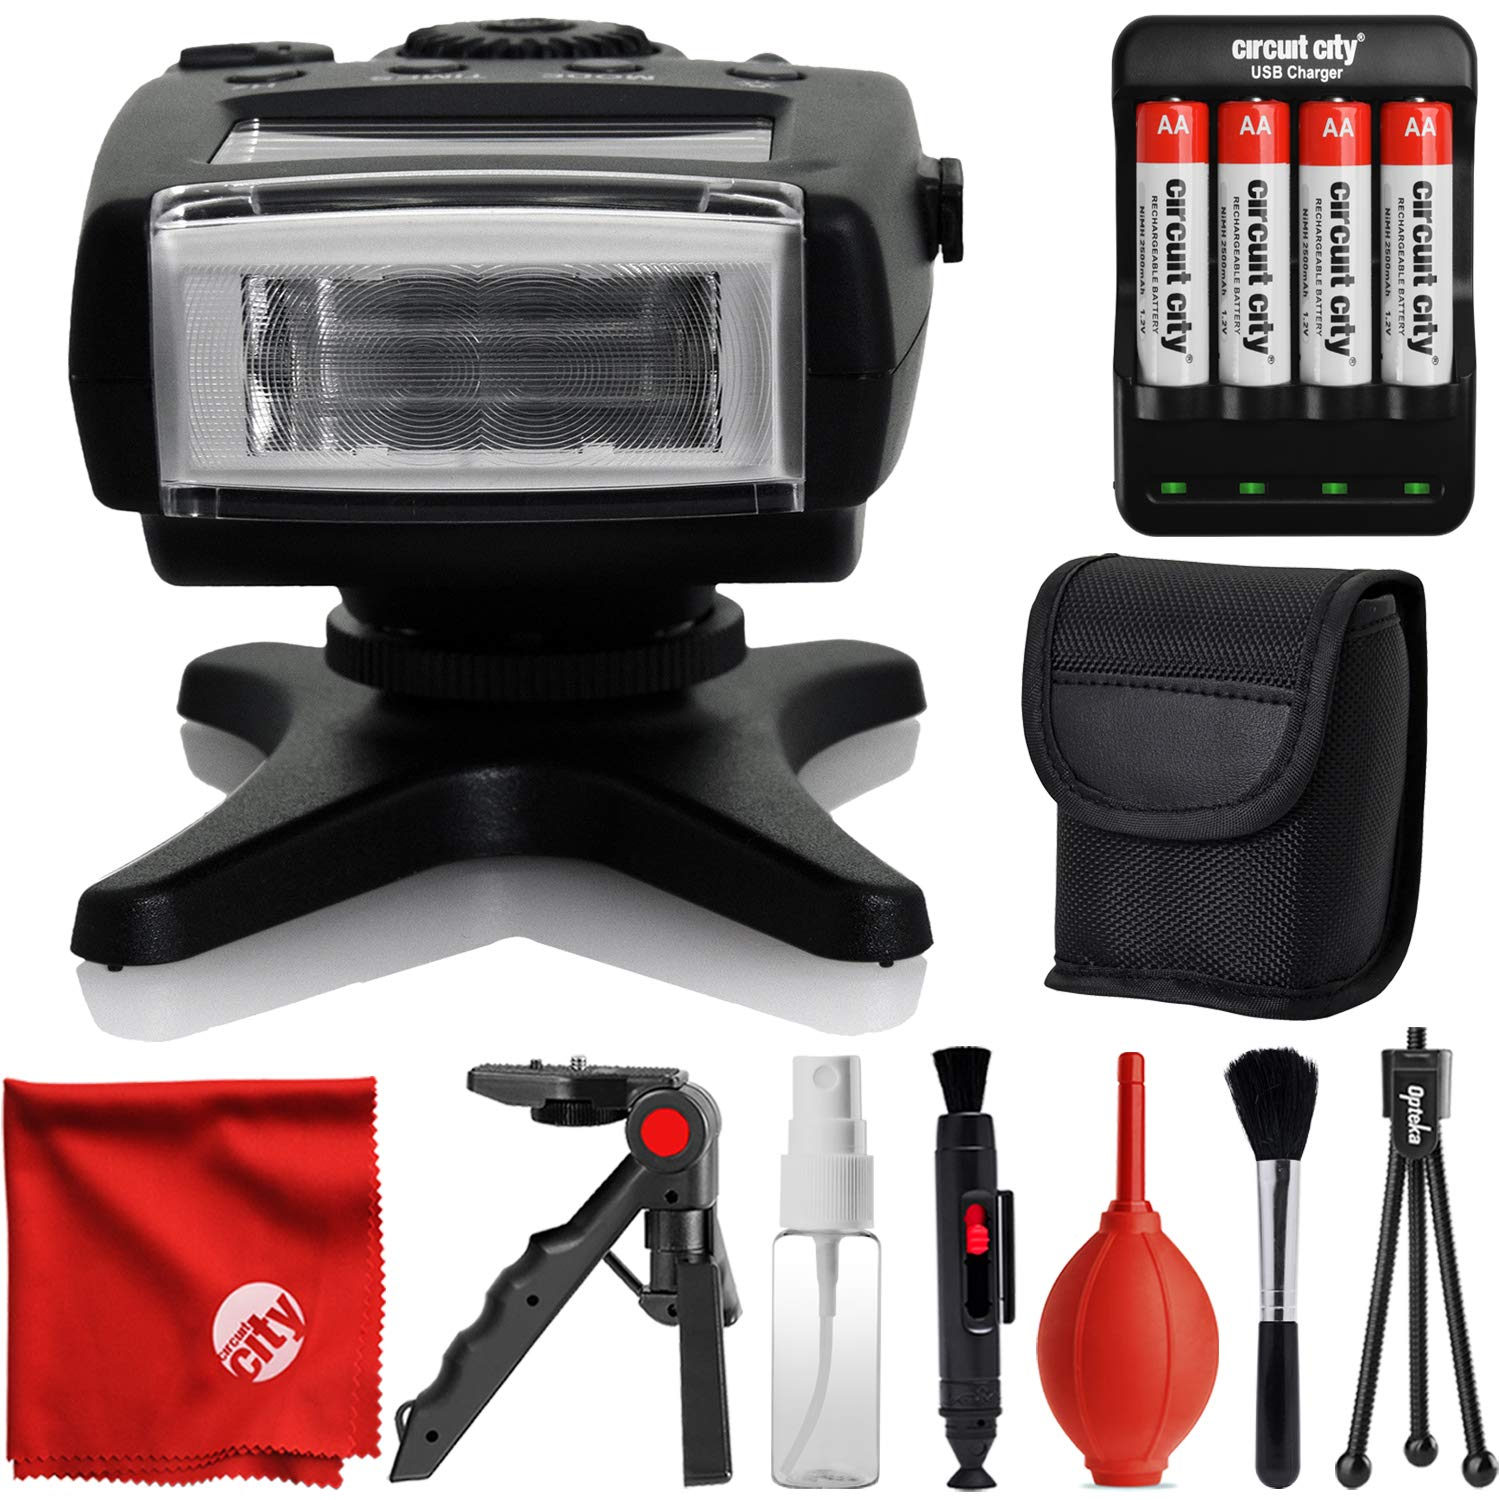 DigitalMate DM130S TTL Dedicated Compact Flash w/LCD Display + Case for Sony NEX 3, NEX 3N, NEX 5, NEX 5T, NEX 5R, NEX 6, NEX 7, A5000, A5100, A6000, A6100, A6300, A6500, A9 APS-C DSLR Cameras by DigitalMate